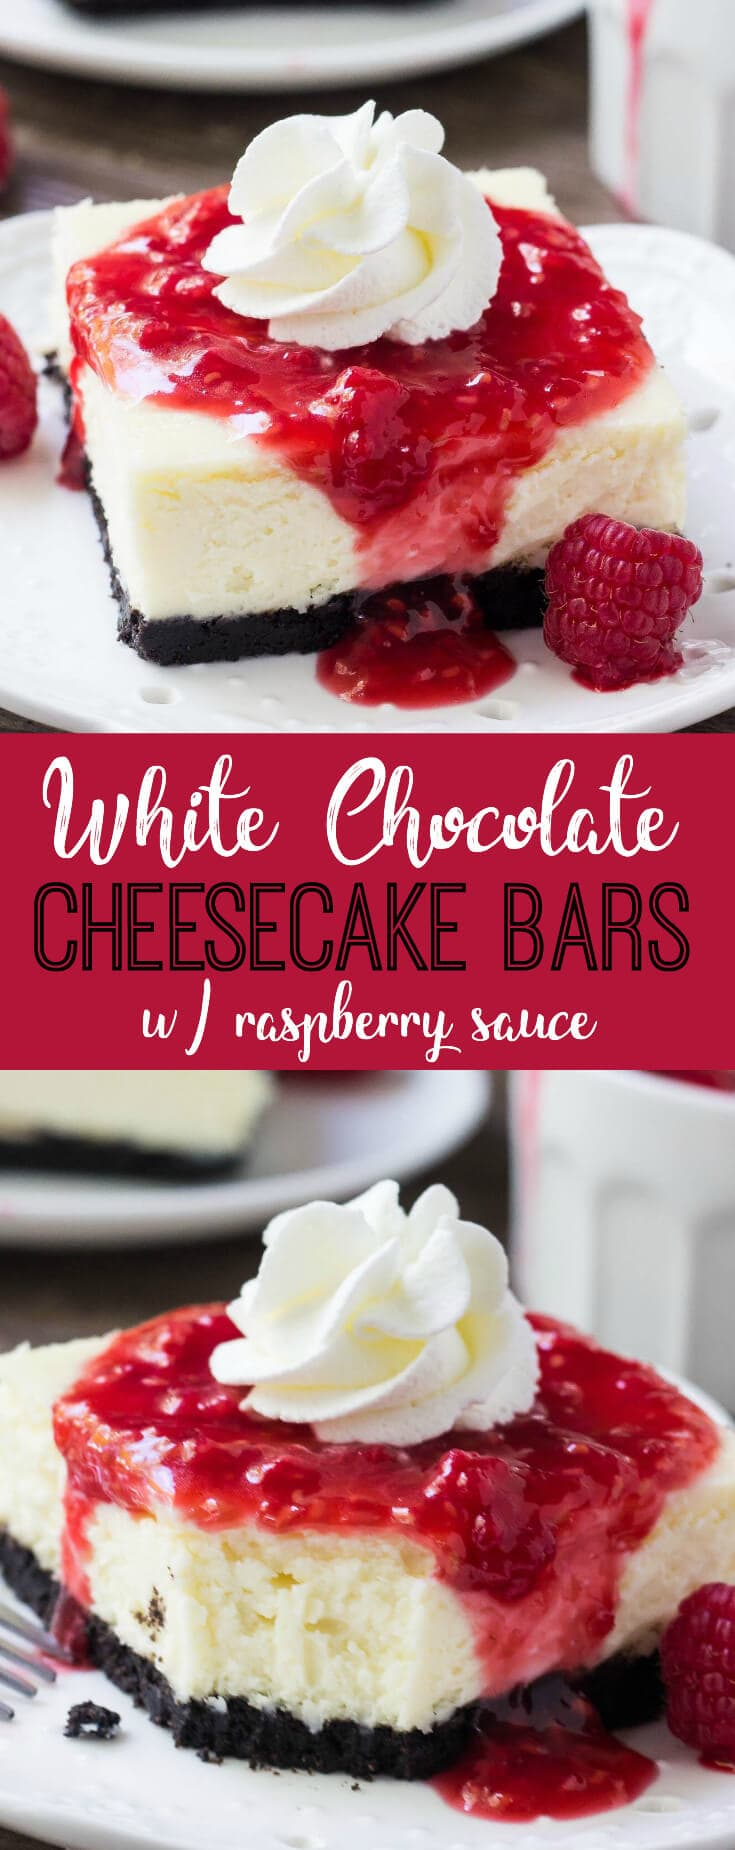 Creamy, smooth white chocolate cheesecake with an Oreo cookie crust. If you're looking for your new favorite dessert - then these white chocolate cheesecake bars with raspberry sauce are just the thing!